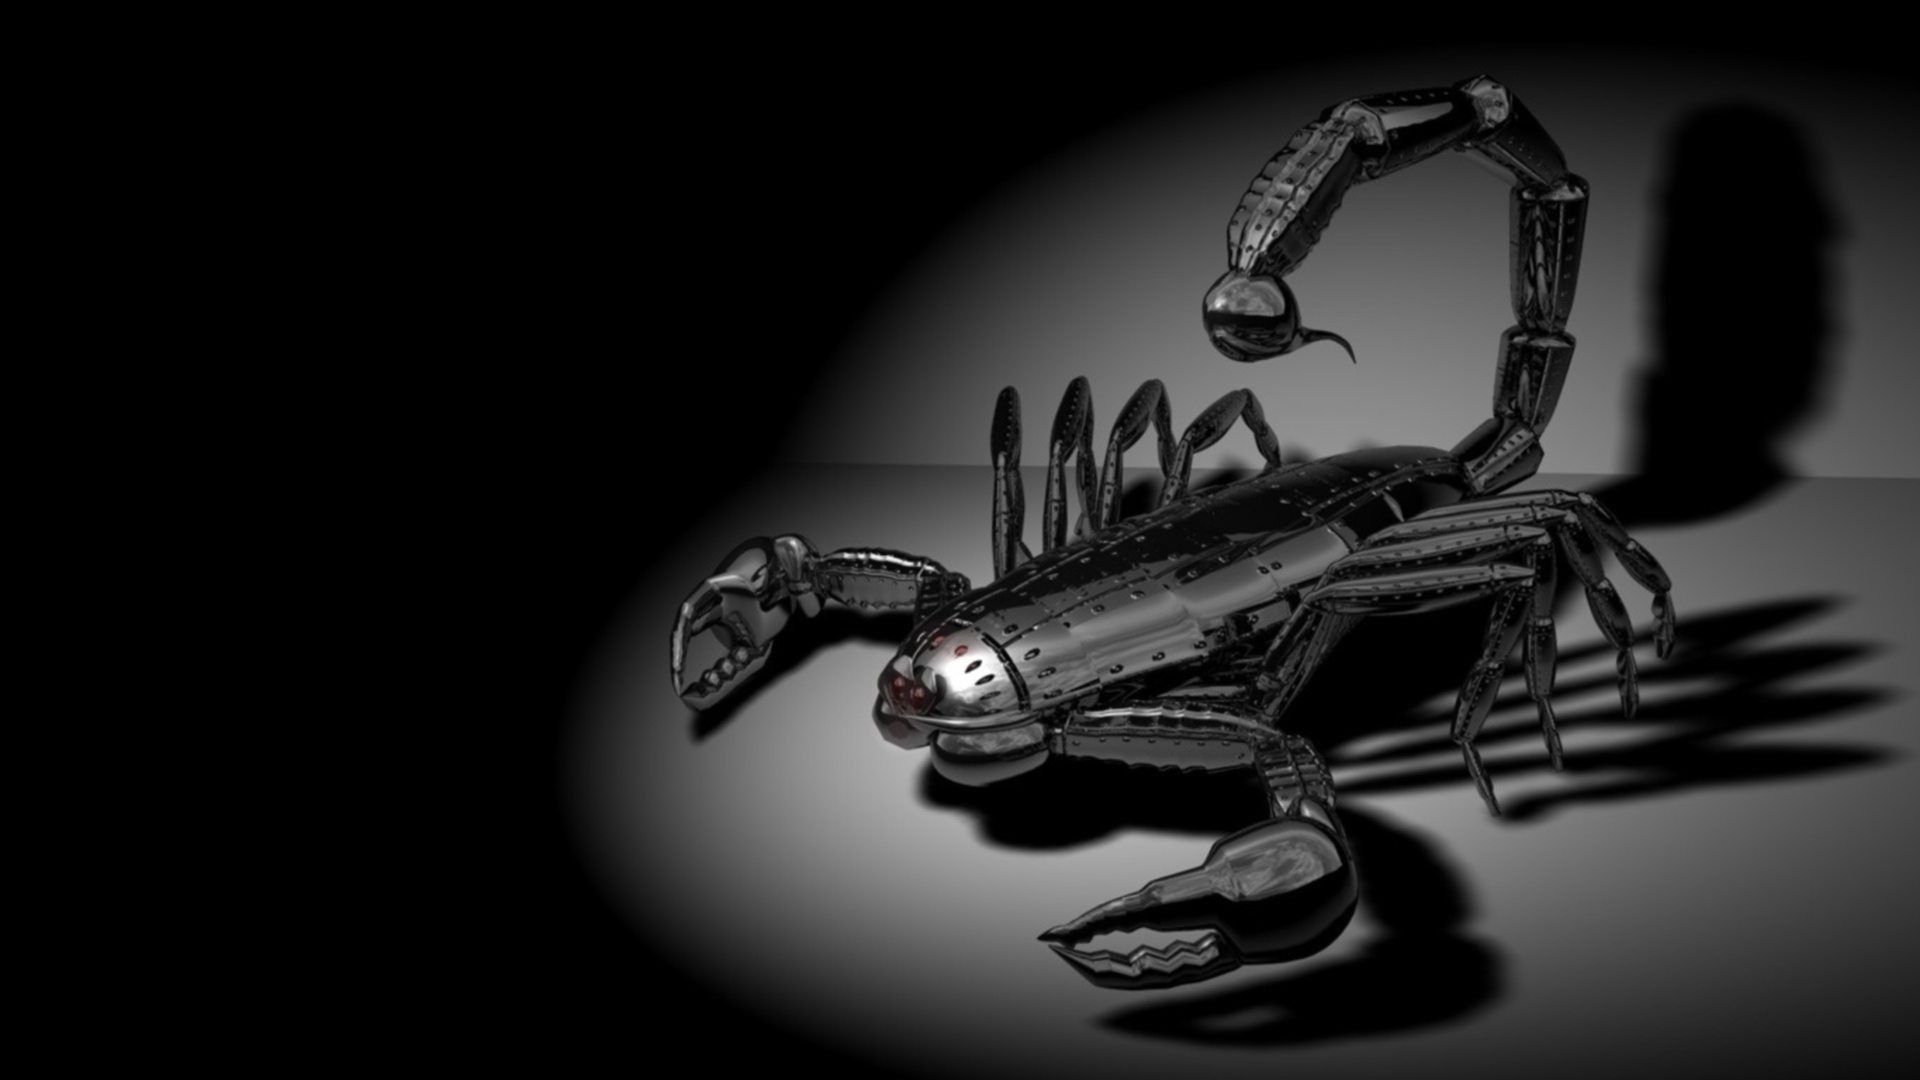 Res: 1920x1080, Black Scorpion HD Wallpaper From Gallsource.com